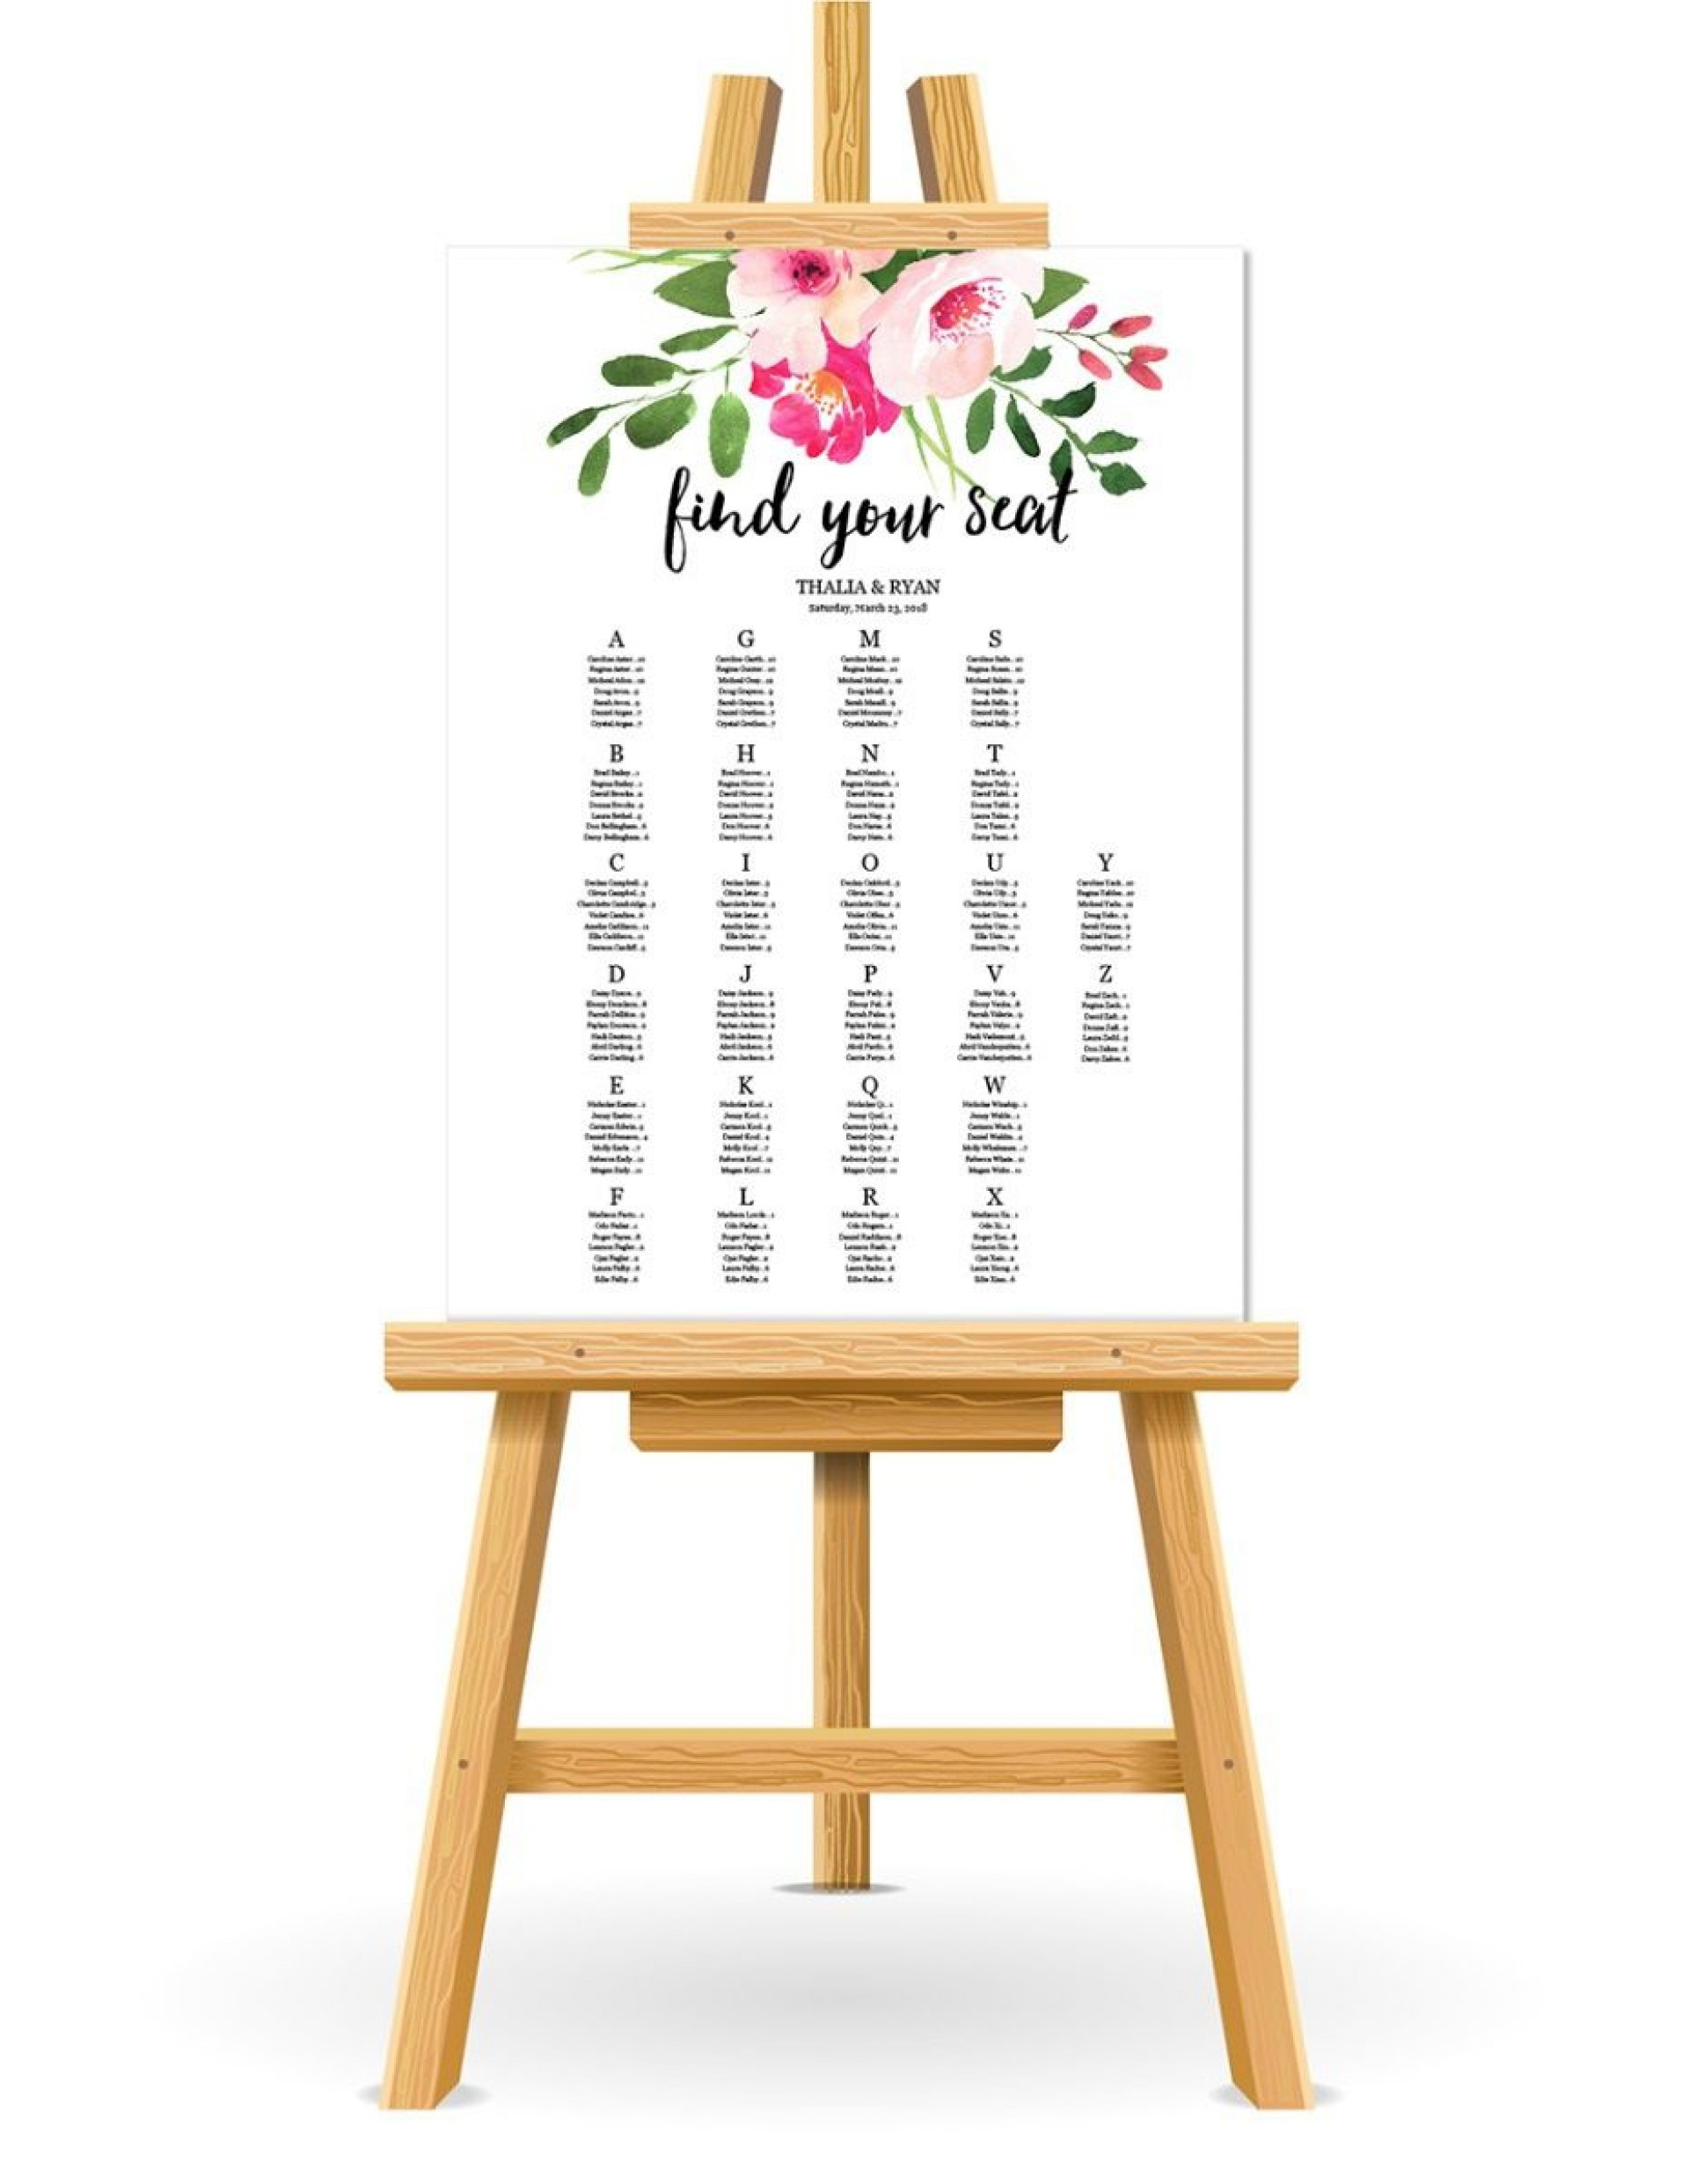 001 Stirring Wedding Seating Chart Template Concept  Templates Plan Excel Word Microsoft1920